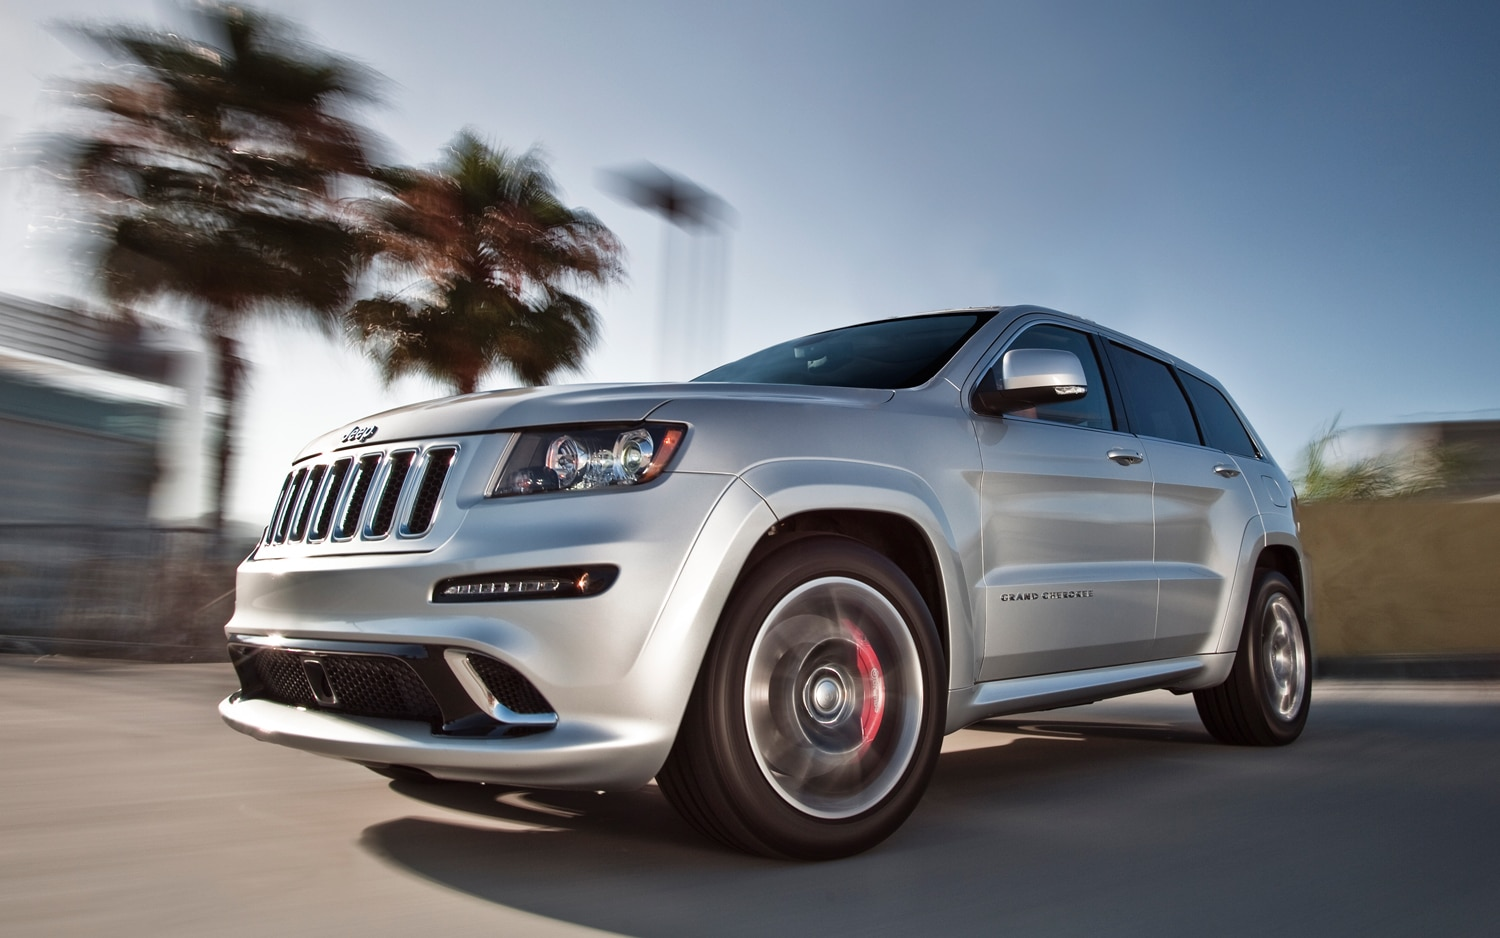 2012 jeep grand cherokee srt8 first drive automobile. Black Bedroom Furniture Sets. Home Design Ideas